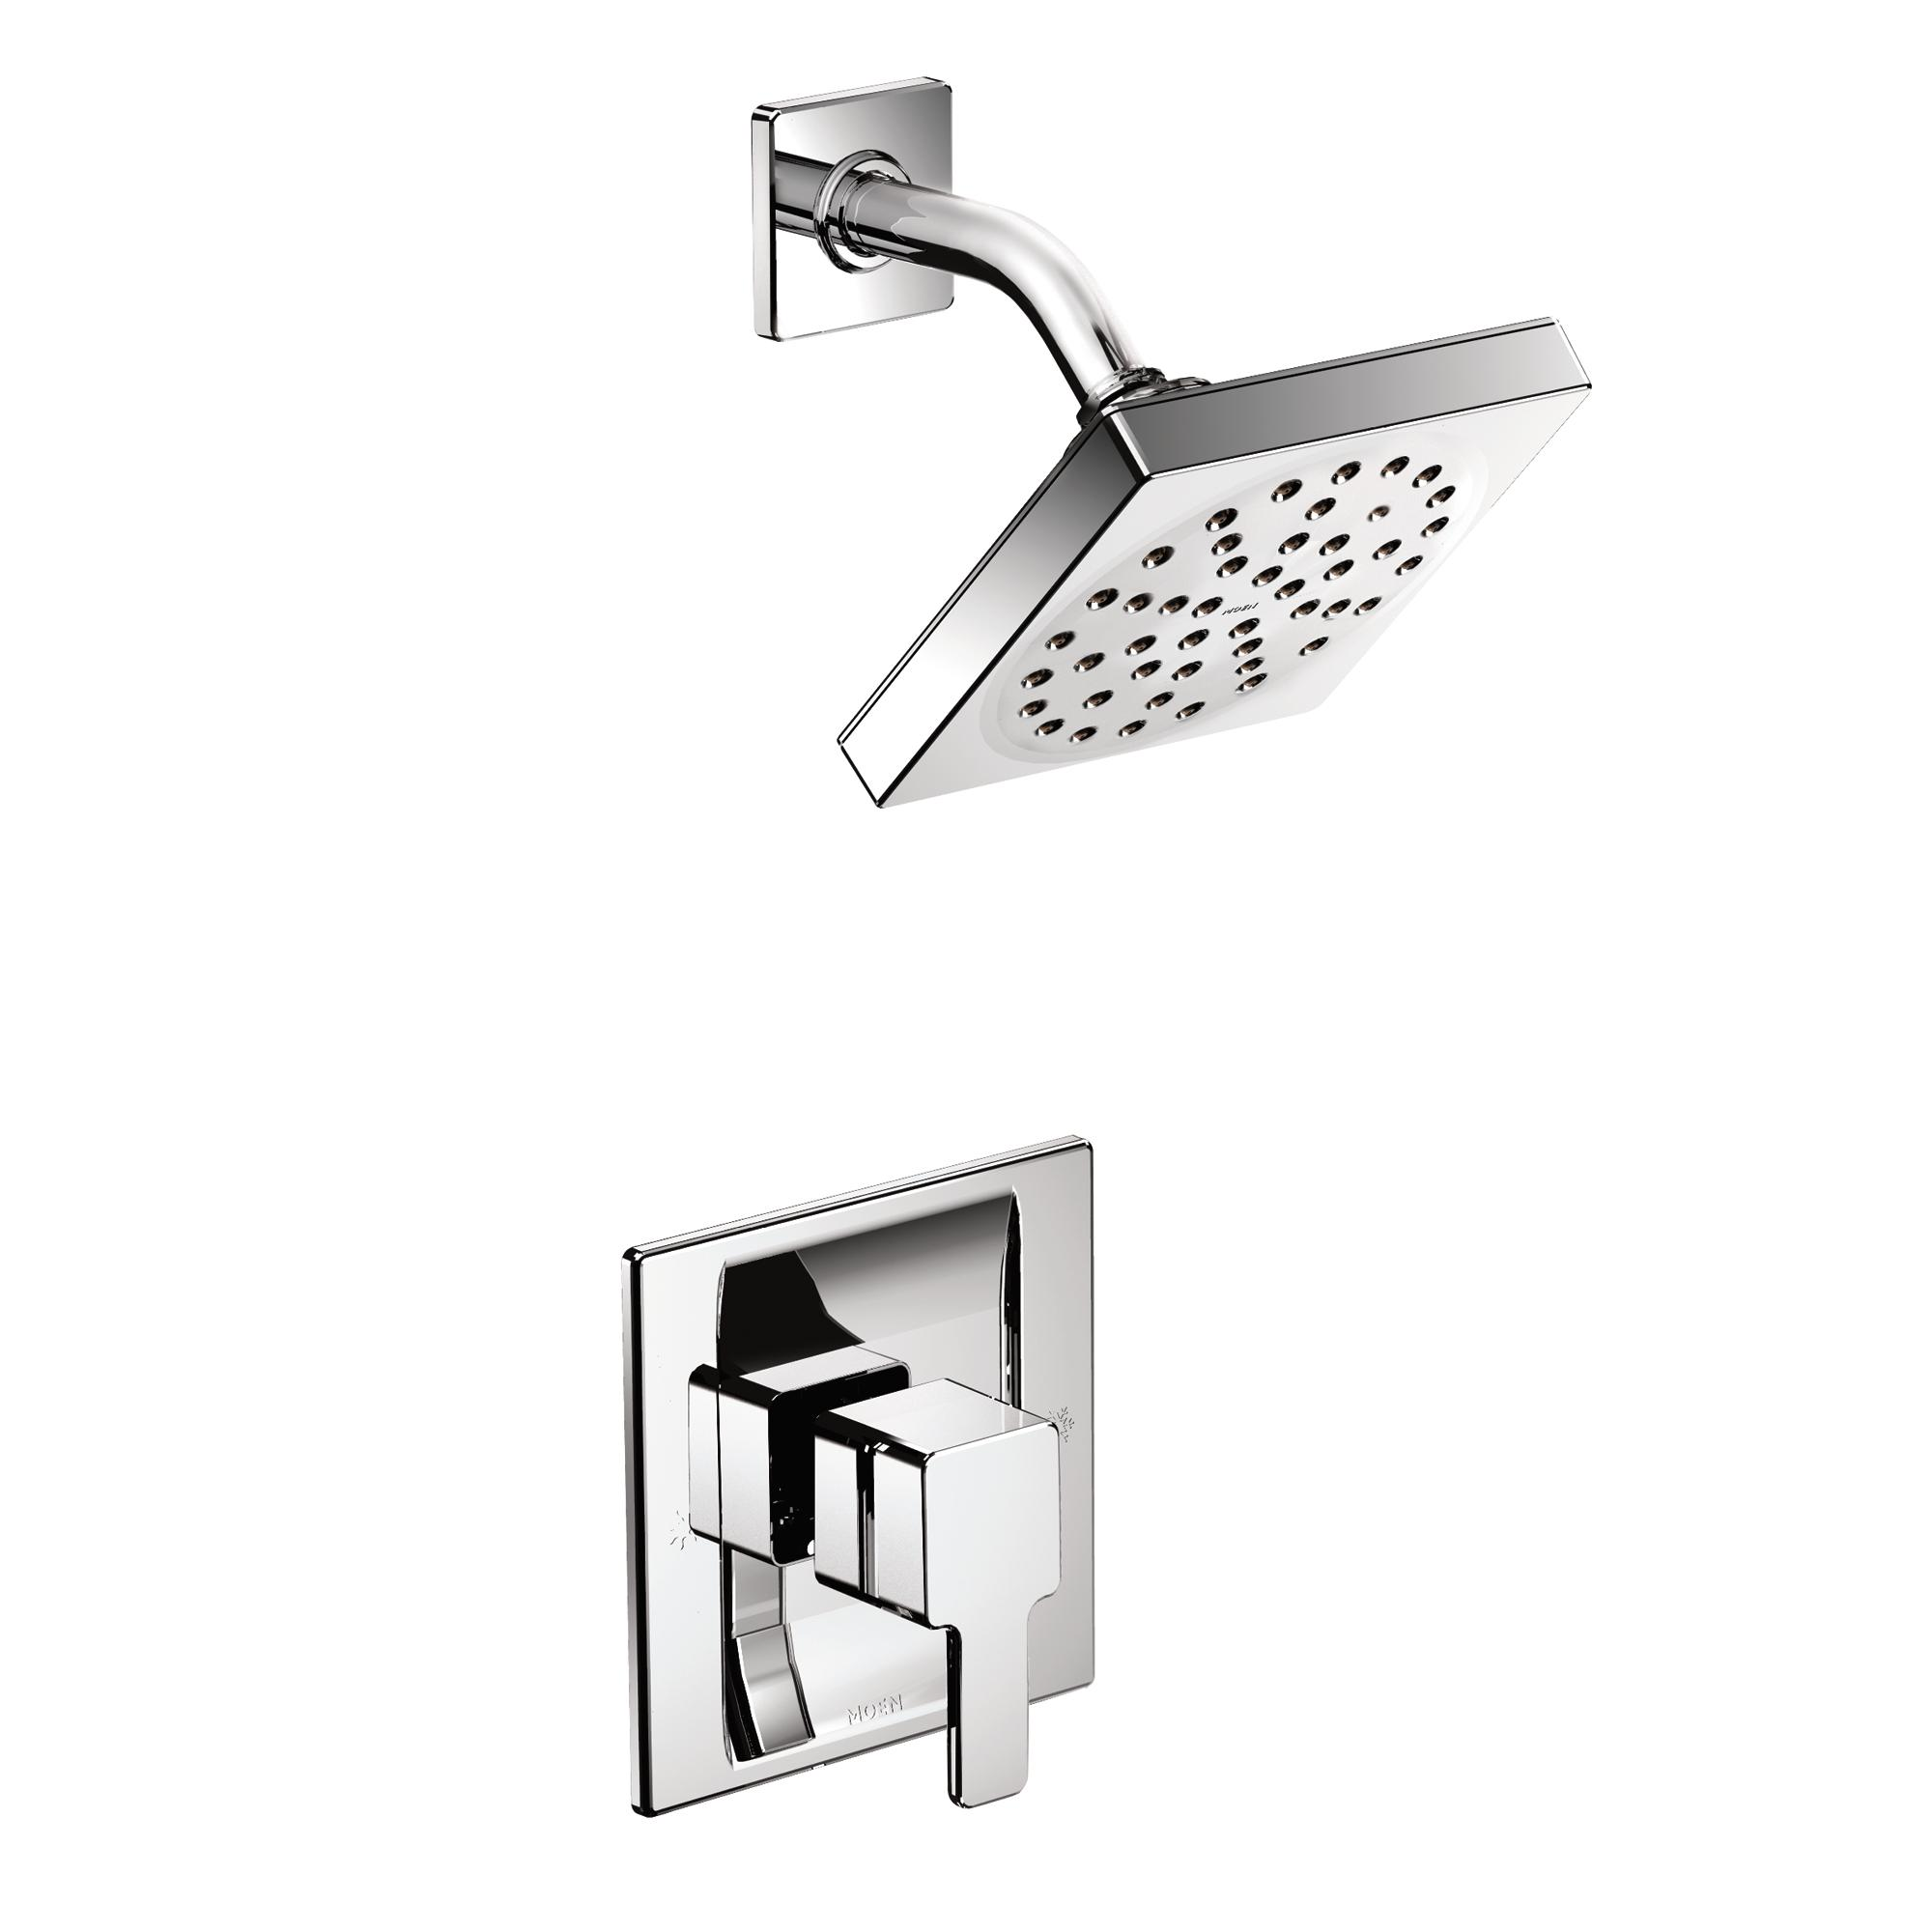 by typestypes faucet typesmoen ideas types cartridge faucets of moen sofa full valve agreeable image shower valves size valveshower